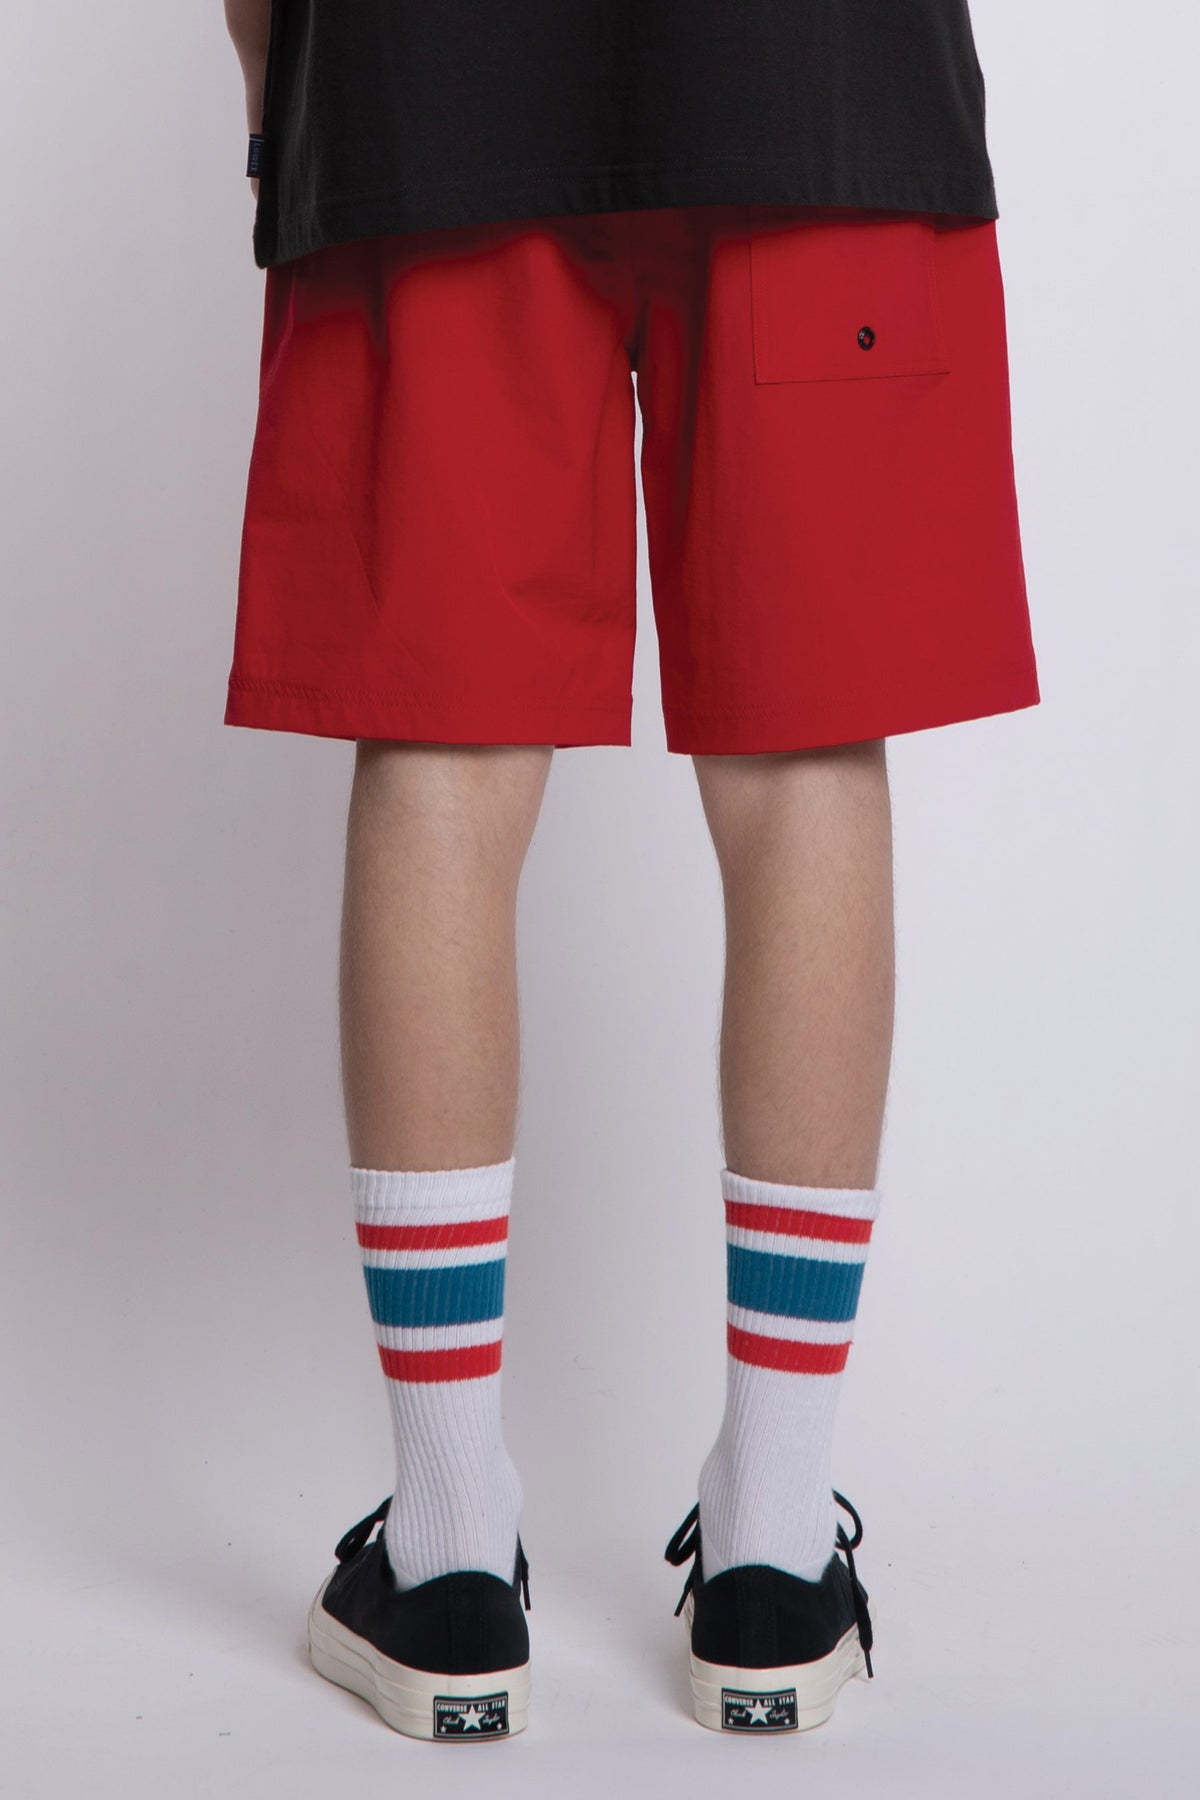 So-Cal Shorts - Red